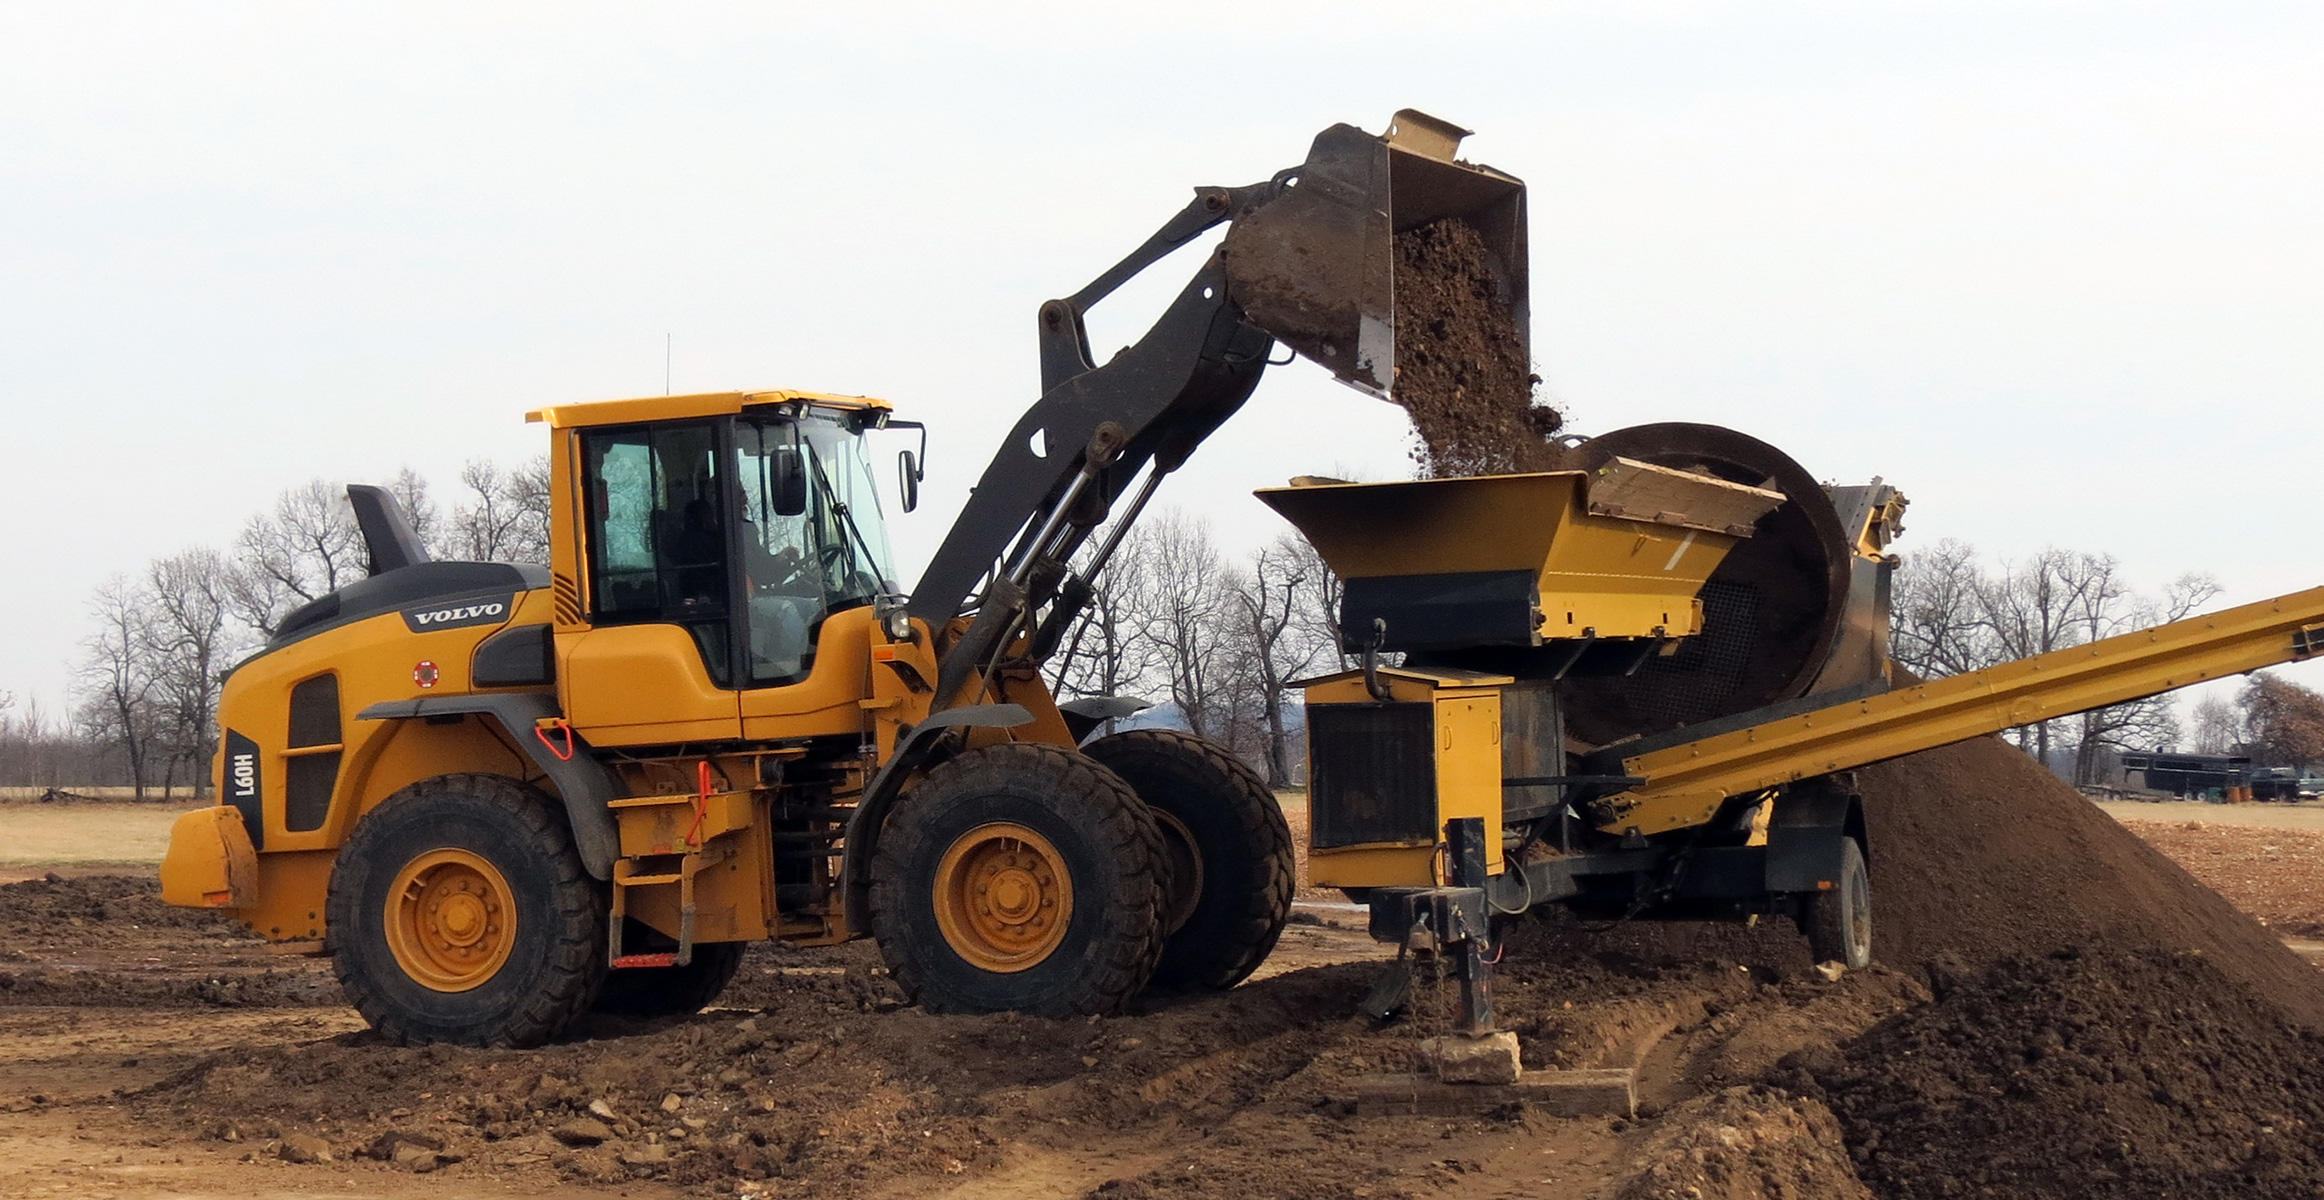 Volvo L60 wheel loader at Chev's Trucking in Lowell, Arkansas